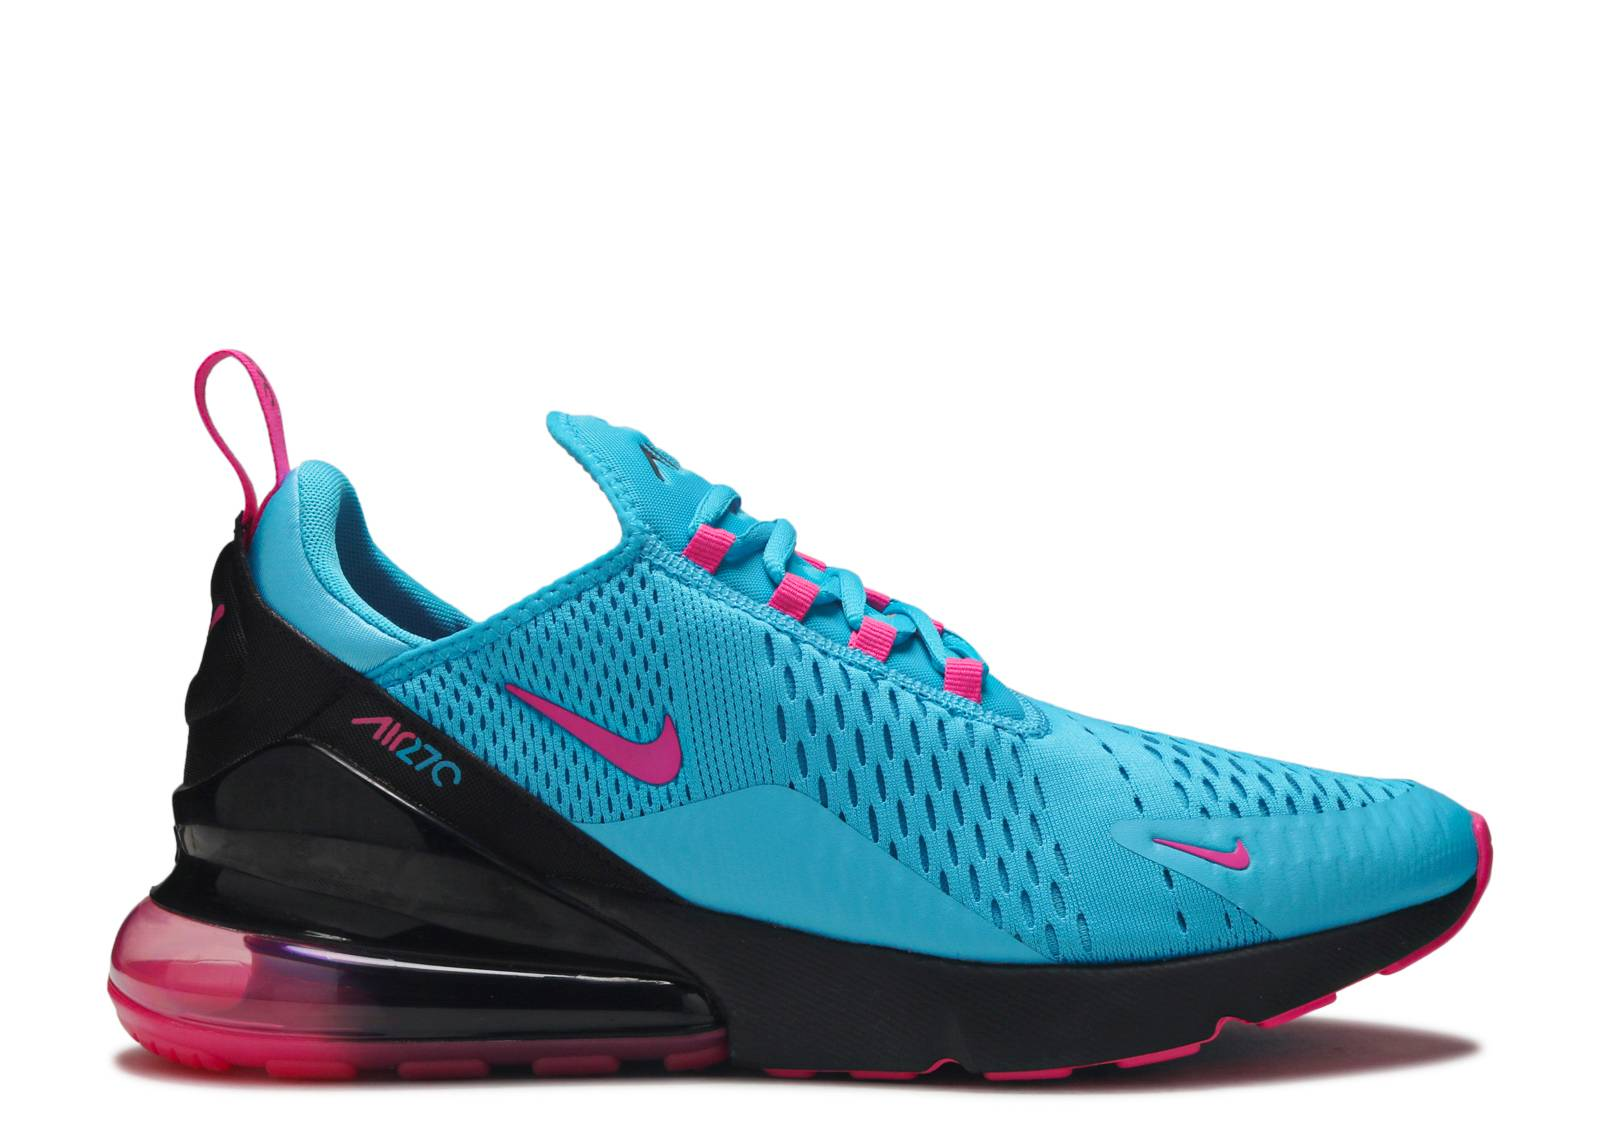 Autorización Masculinidad imagina  Air Max 270 'South Beach' - Nike - BV6078 400 - light blue fury/laser  fuchsia/black | Flight Club